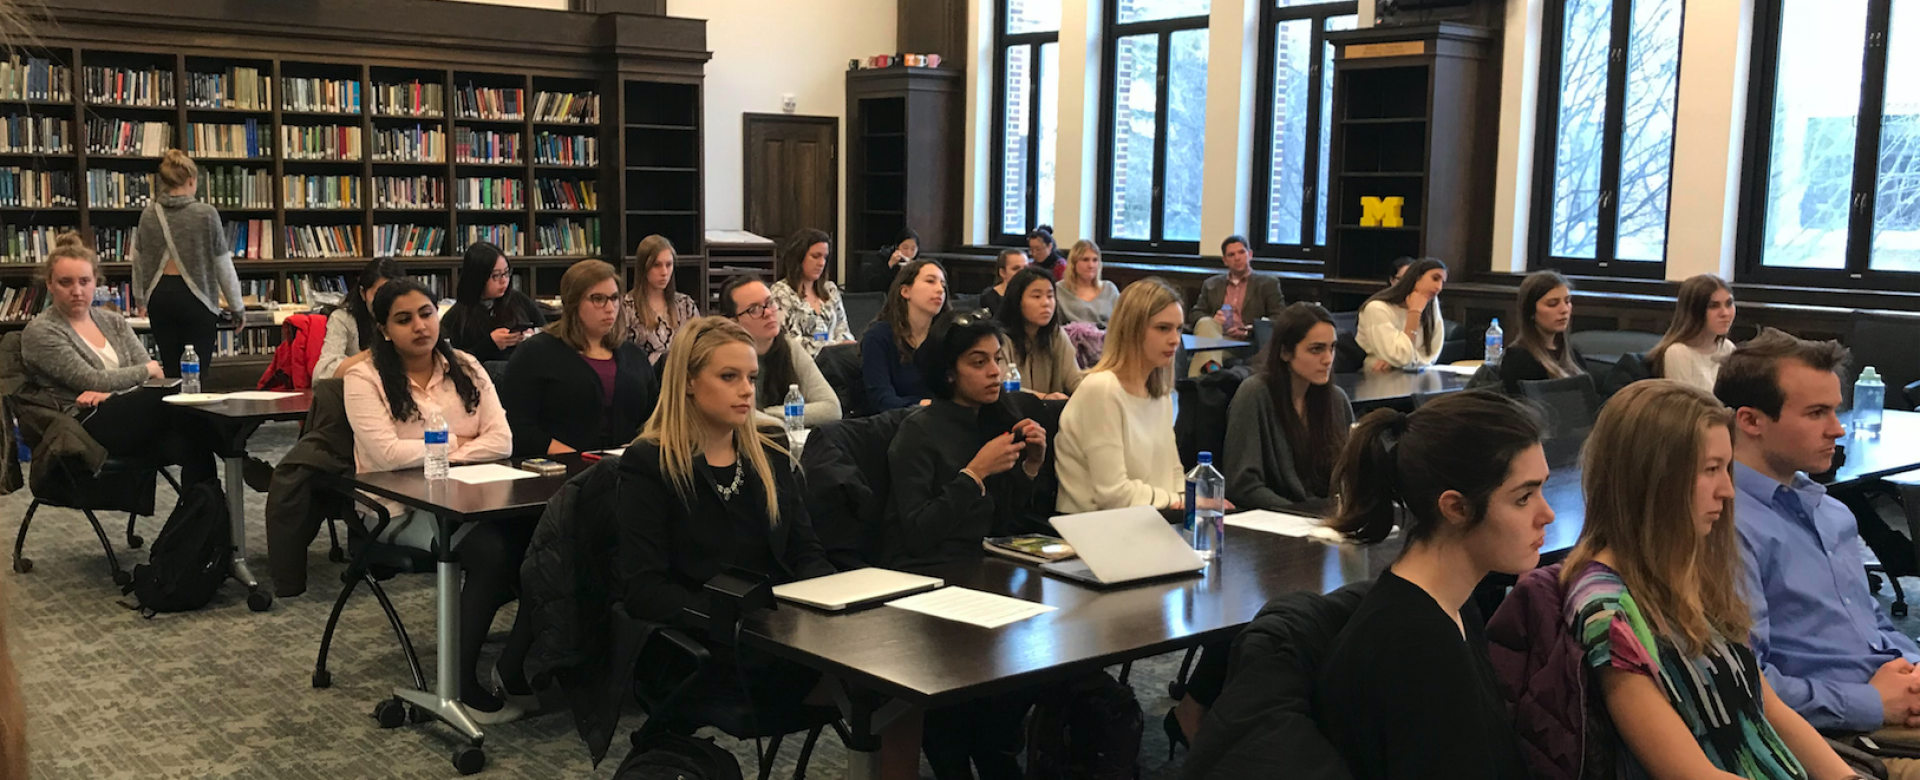 Official Website of the Society of Women in Economics at the University of Michigan